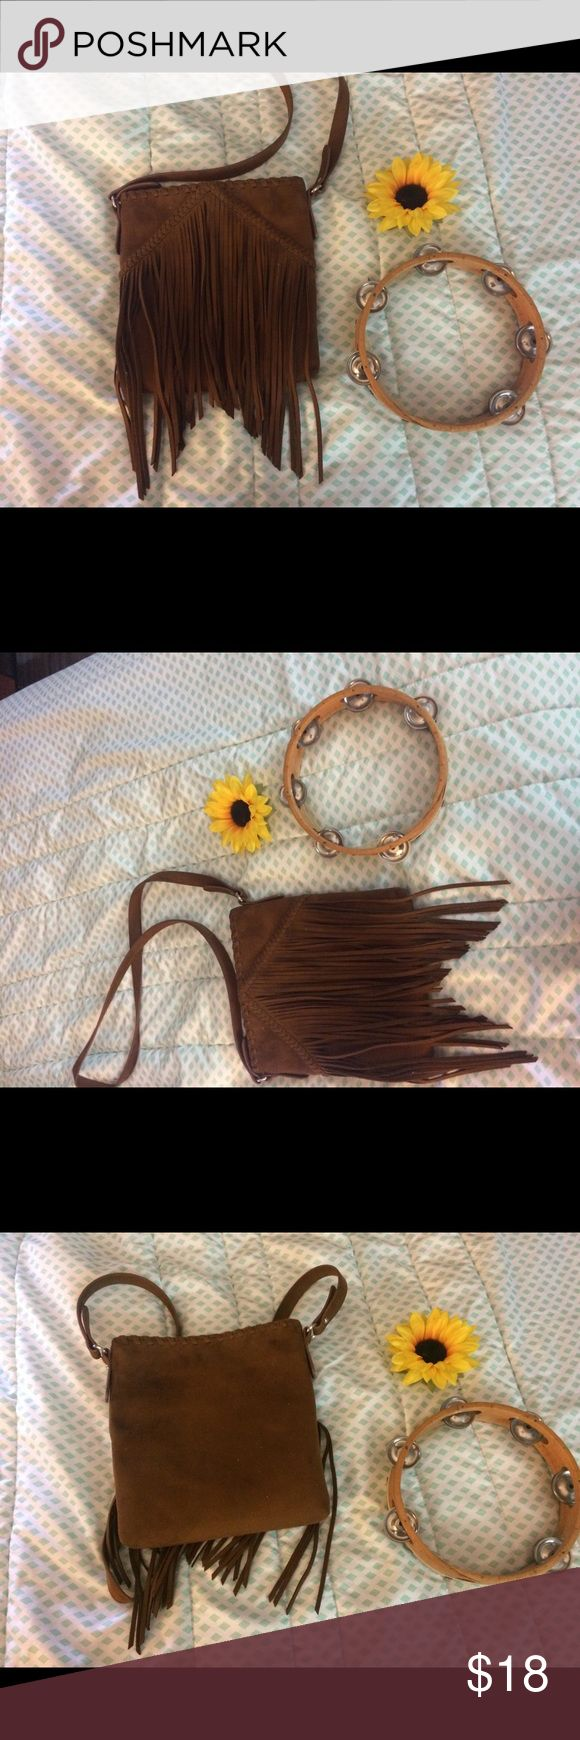 Express Faux Suede Fringe handbag This purse is such a cute compliment to any outfit. Perfect for a night out or a day in the city. In perfect condition. Bags Crossbody Bags